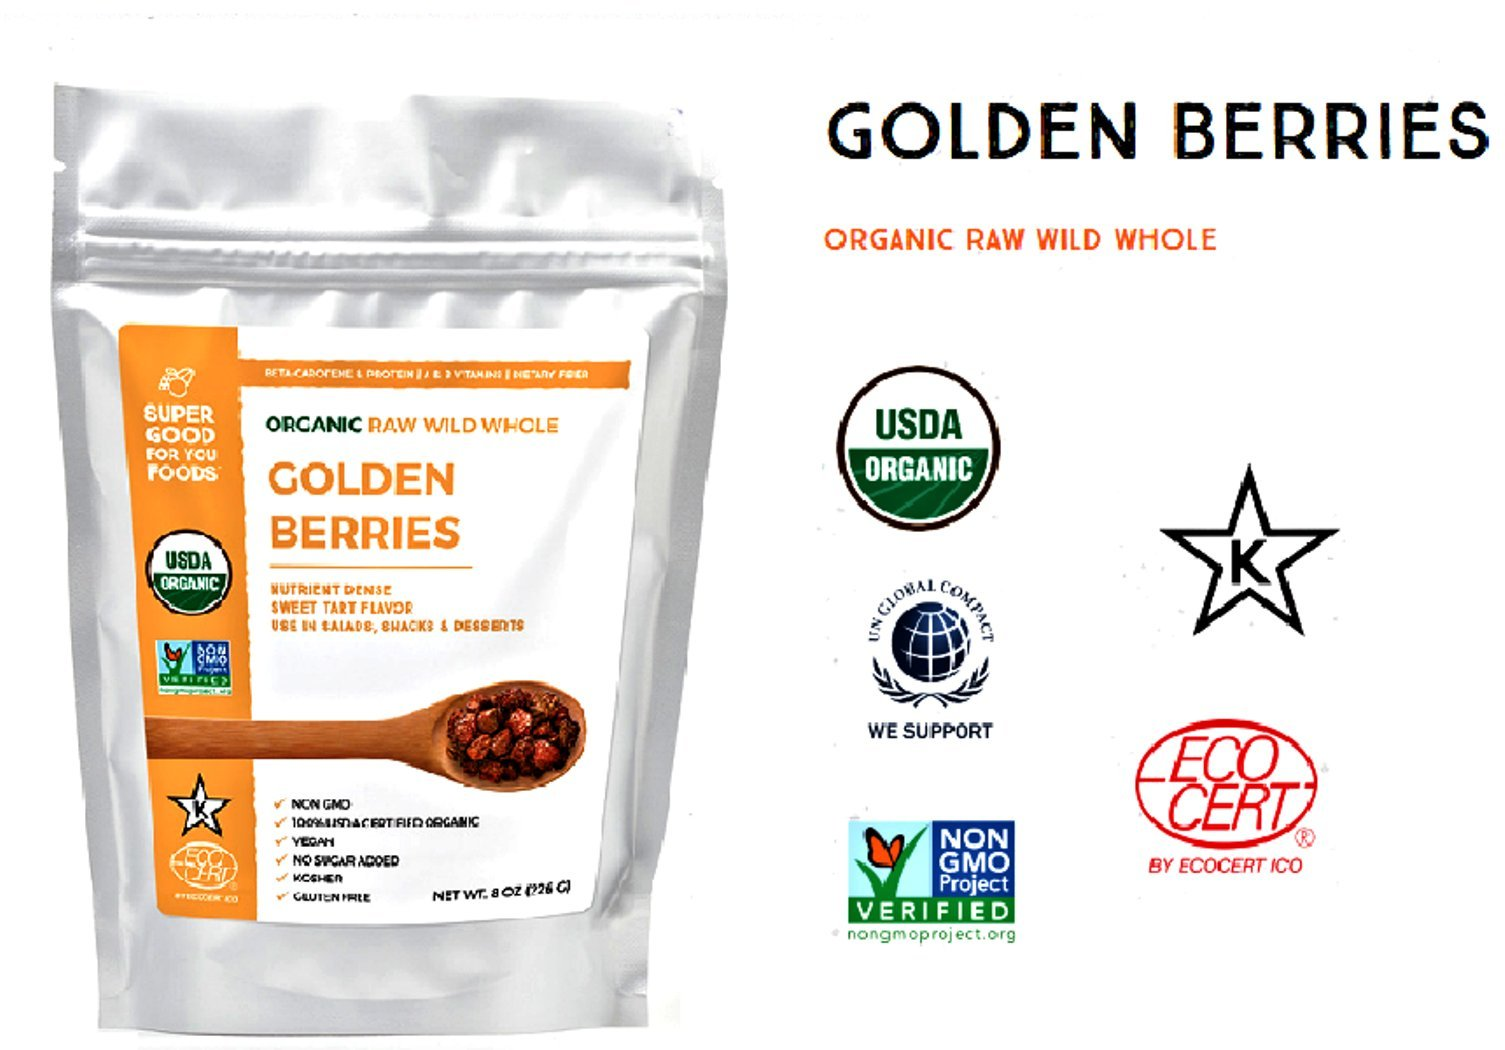 Super Good For You Foods Organic Raw Whole Golden Berries, Gluten-Free, Non-GMO + Vegan, 16 Ounce Bag